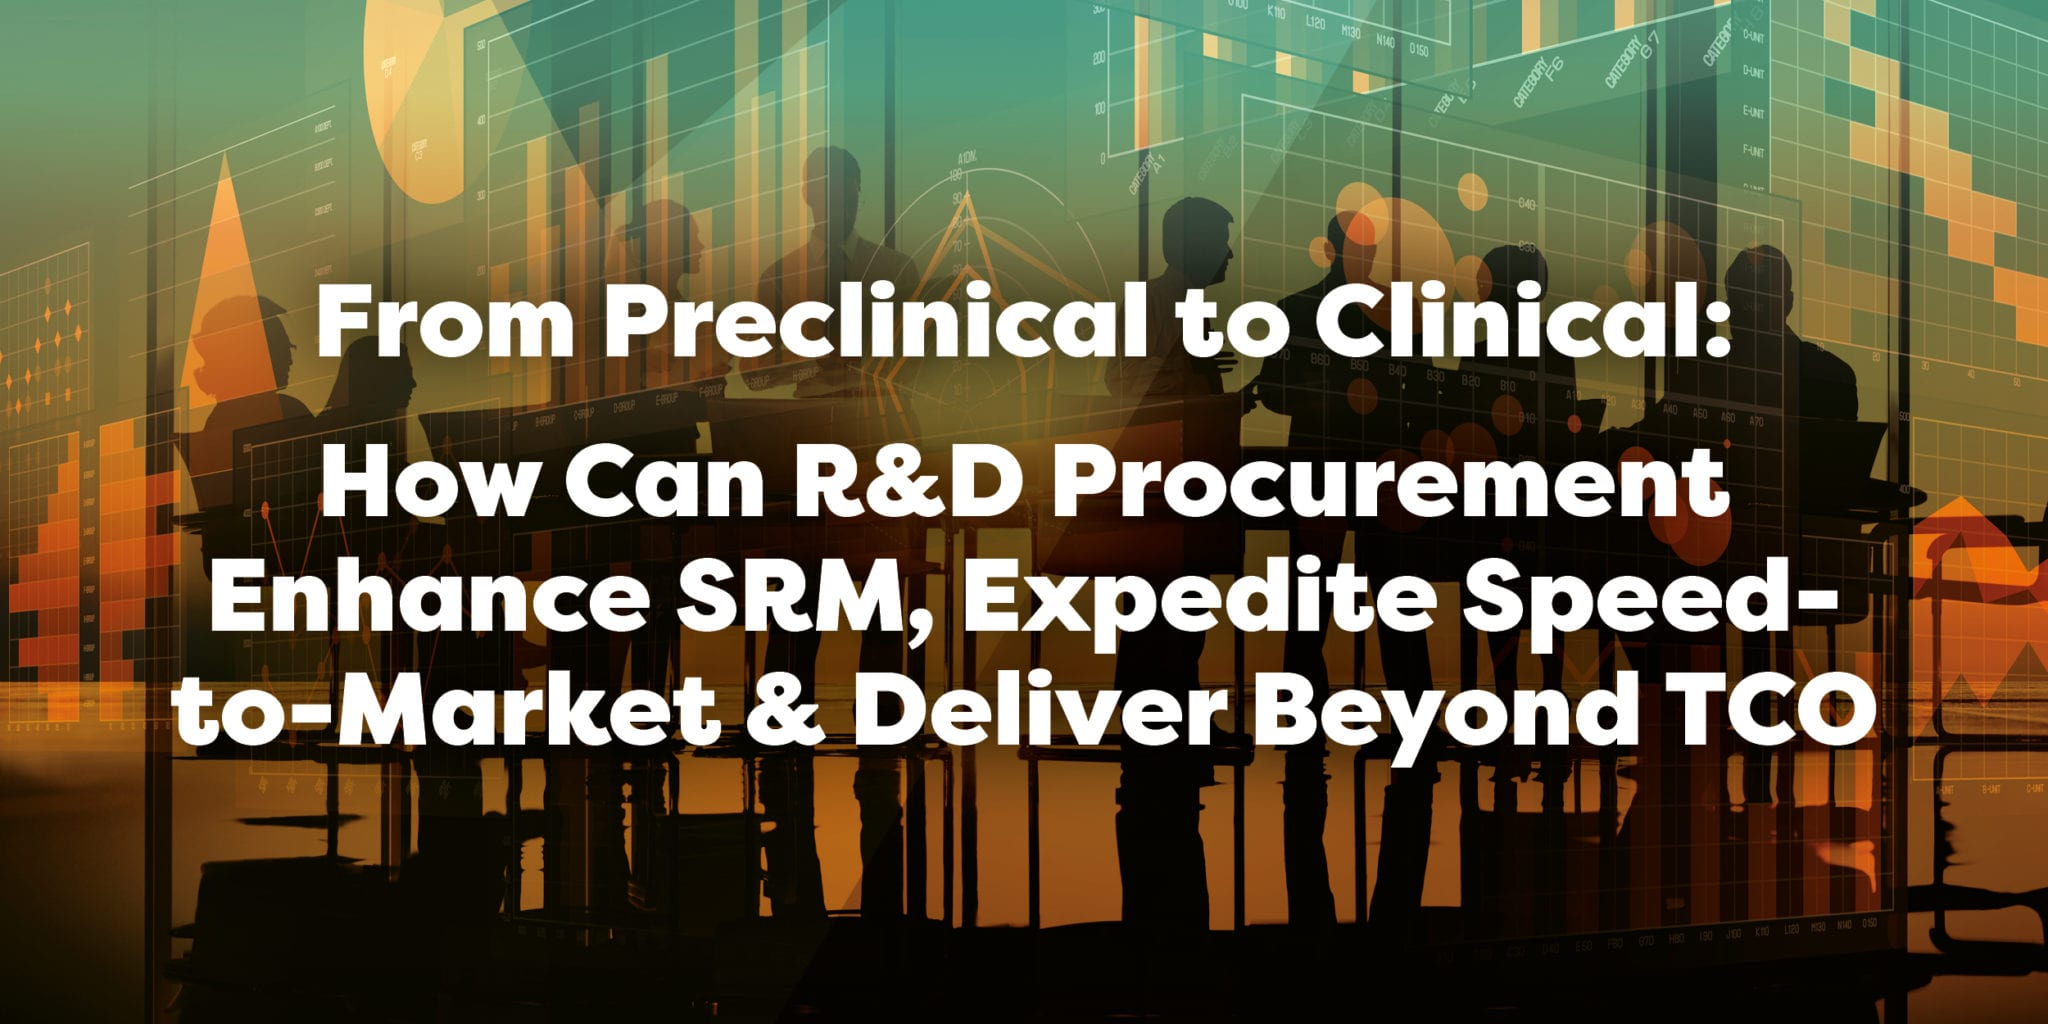 From Preclinical to Clinical: How Can R&D Precurement Enhance SRM, Expedite Speed to market & DEliver beyond TCO